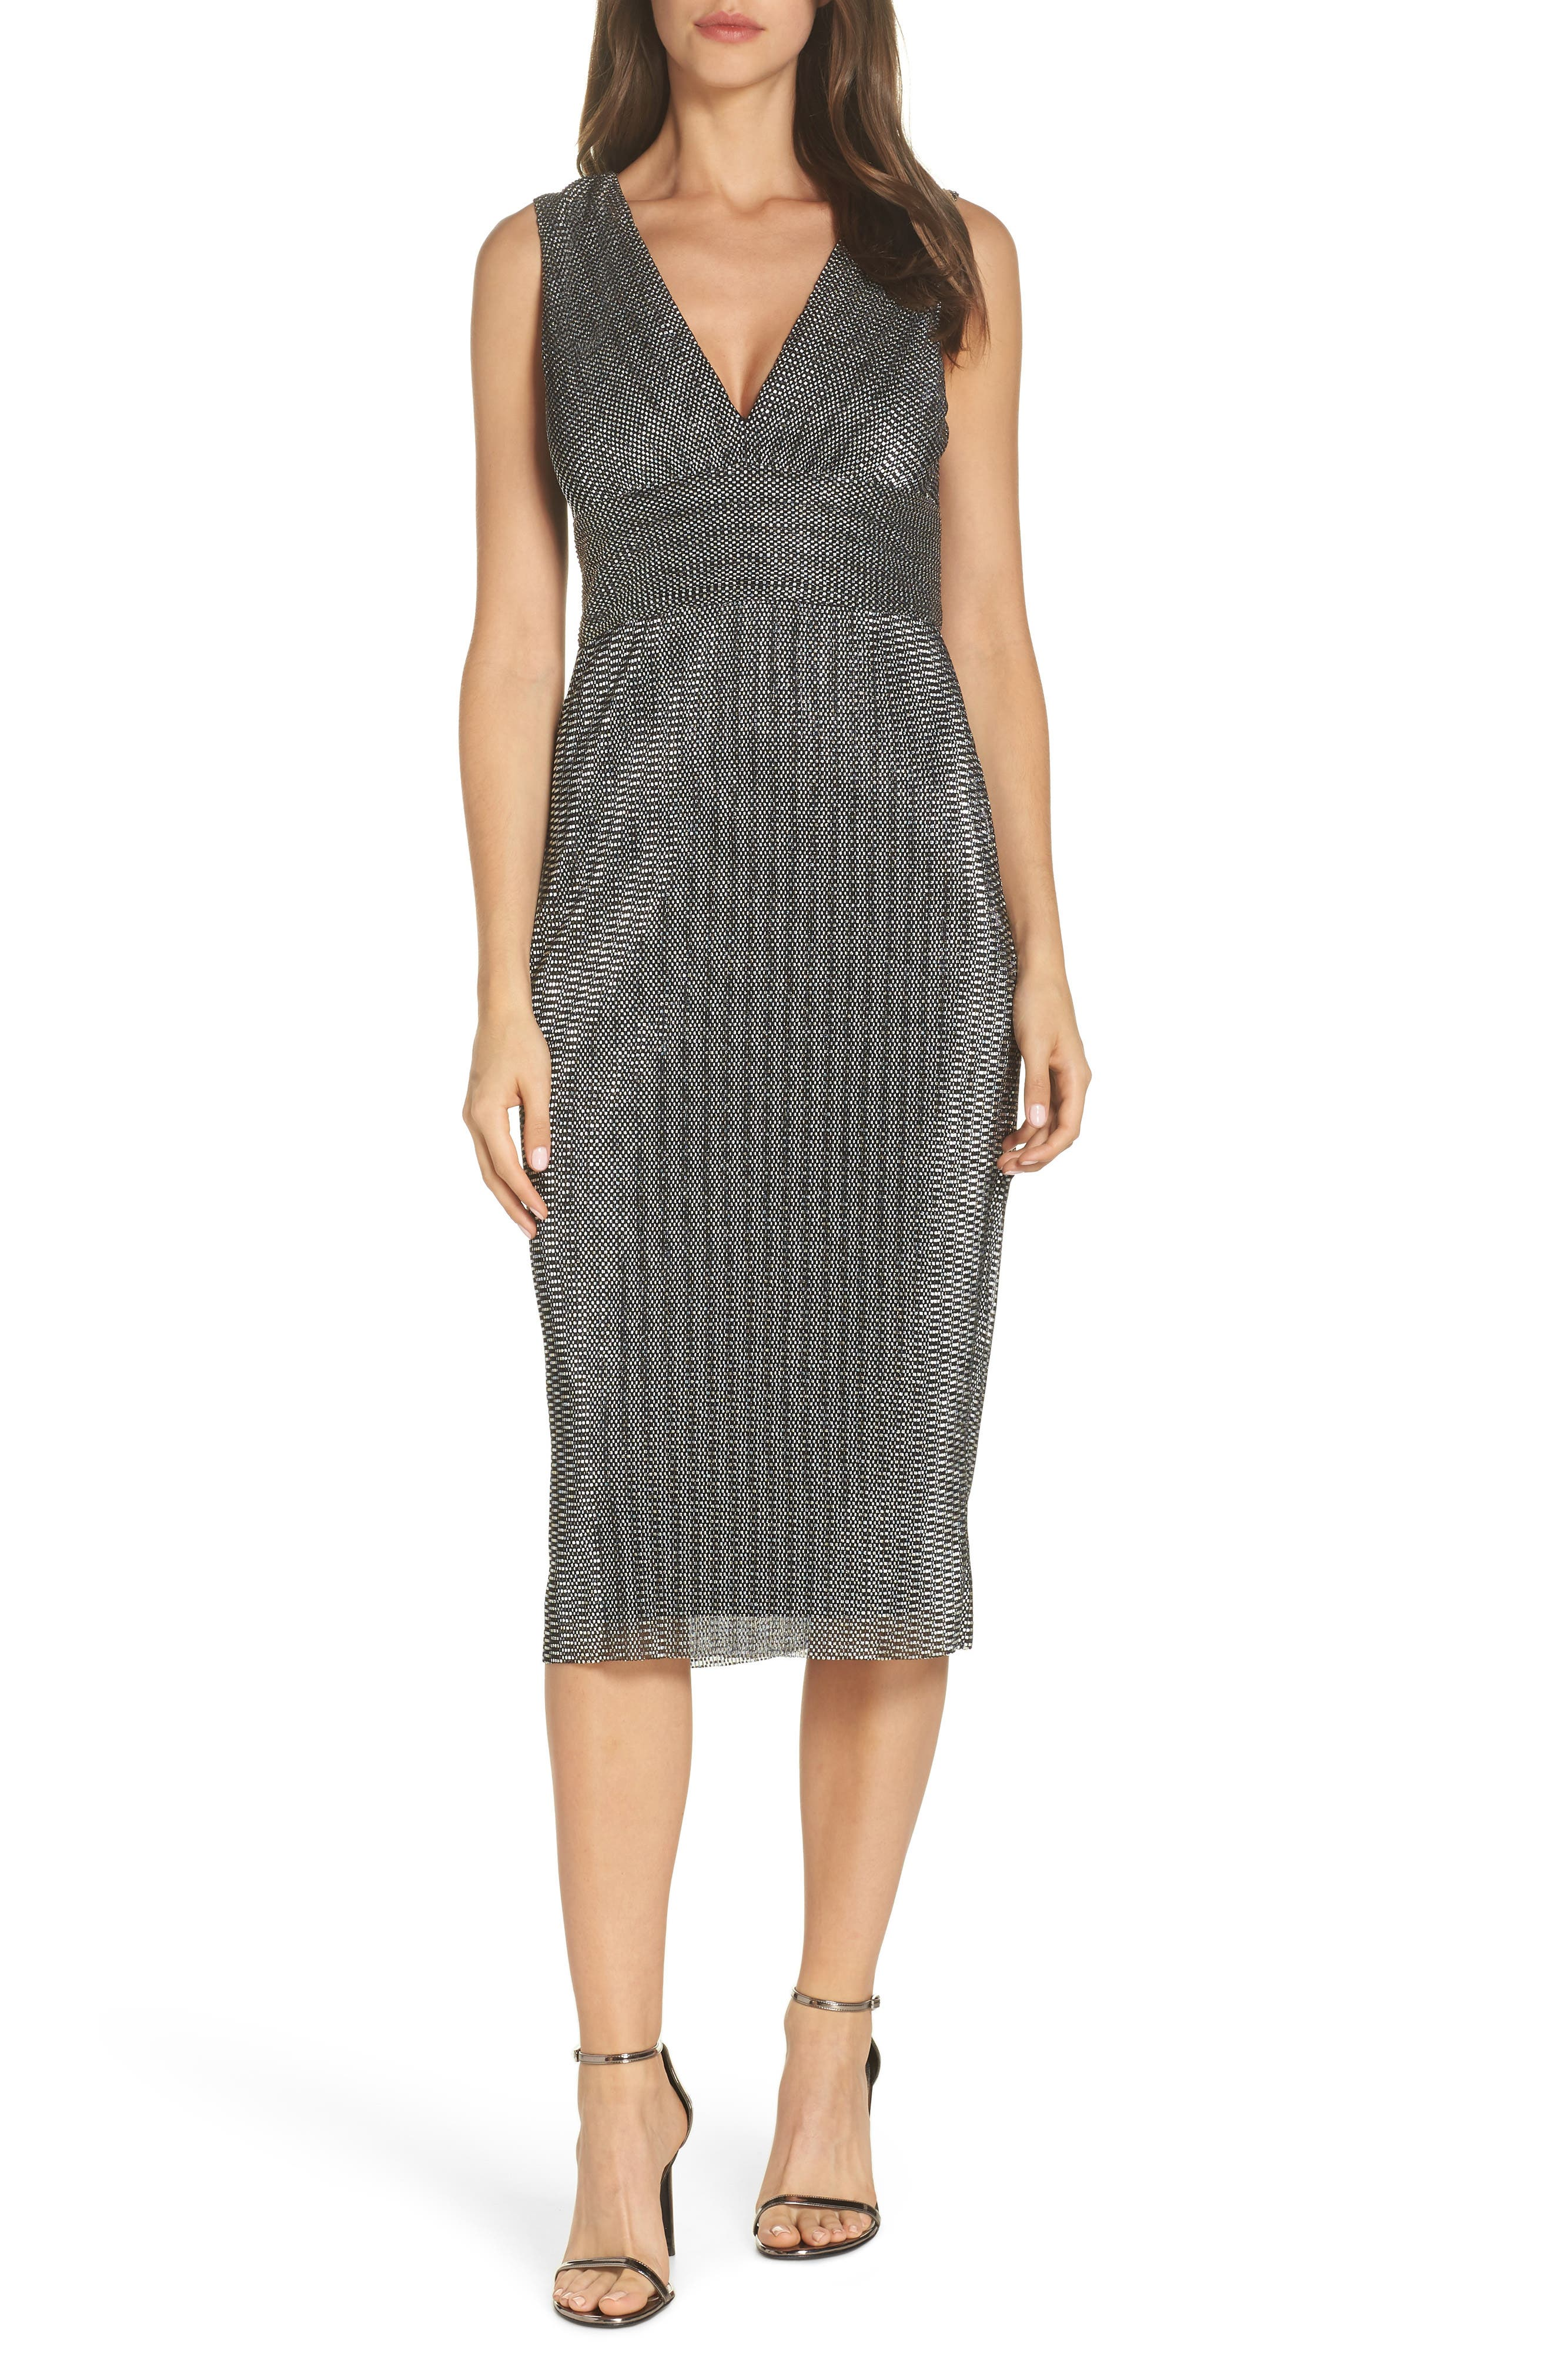 Adrianna Papell Chain Mail Knit Cocktail Sheath